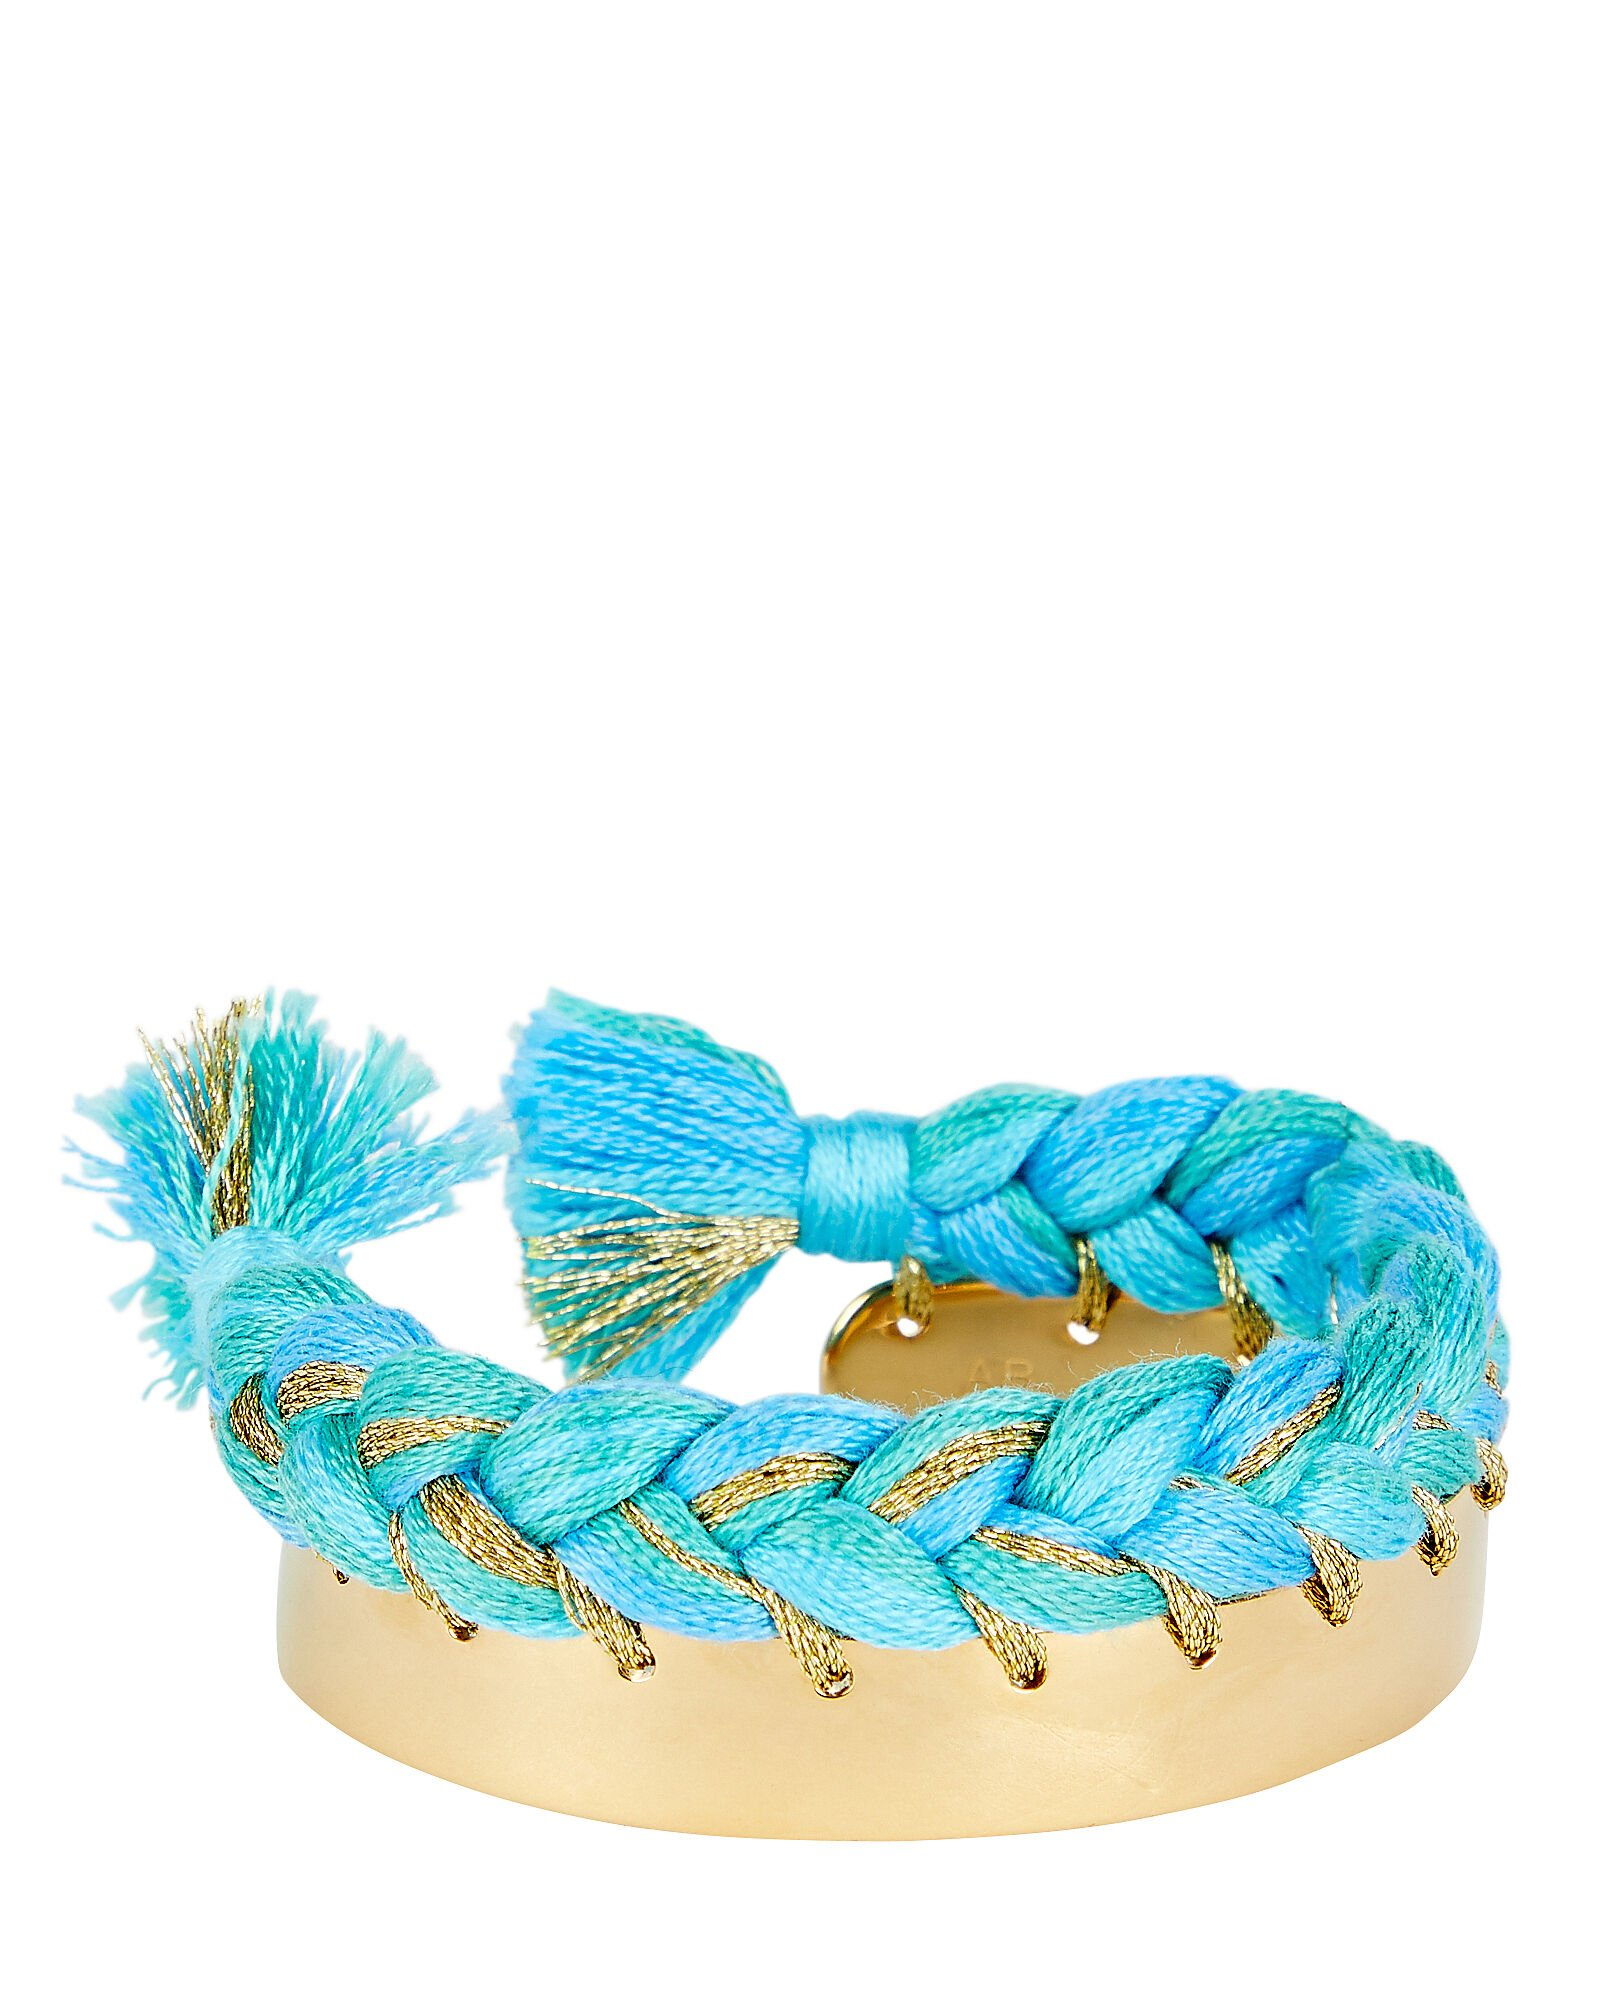 Copacabana Braided Cuff, BLUE-LT, hi-res